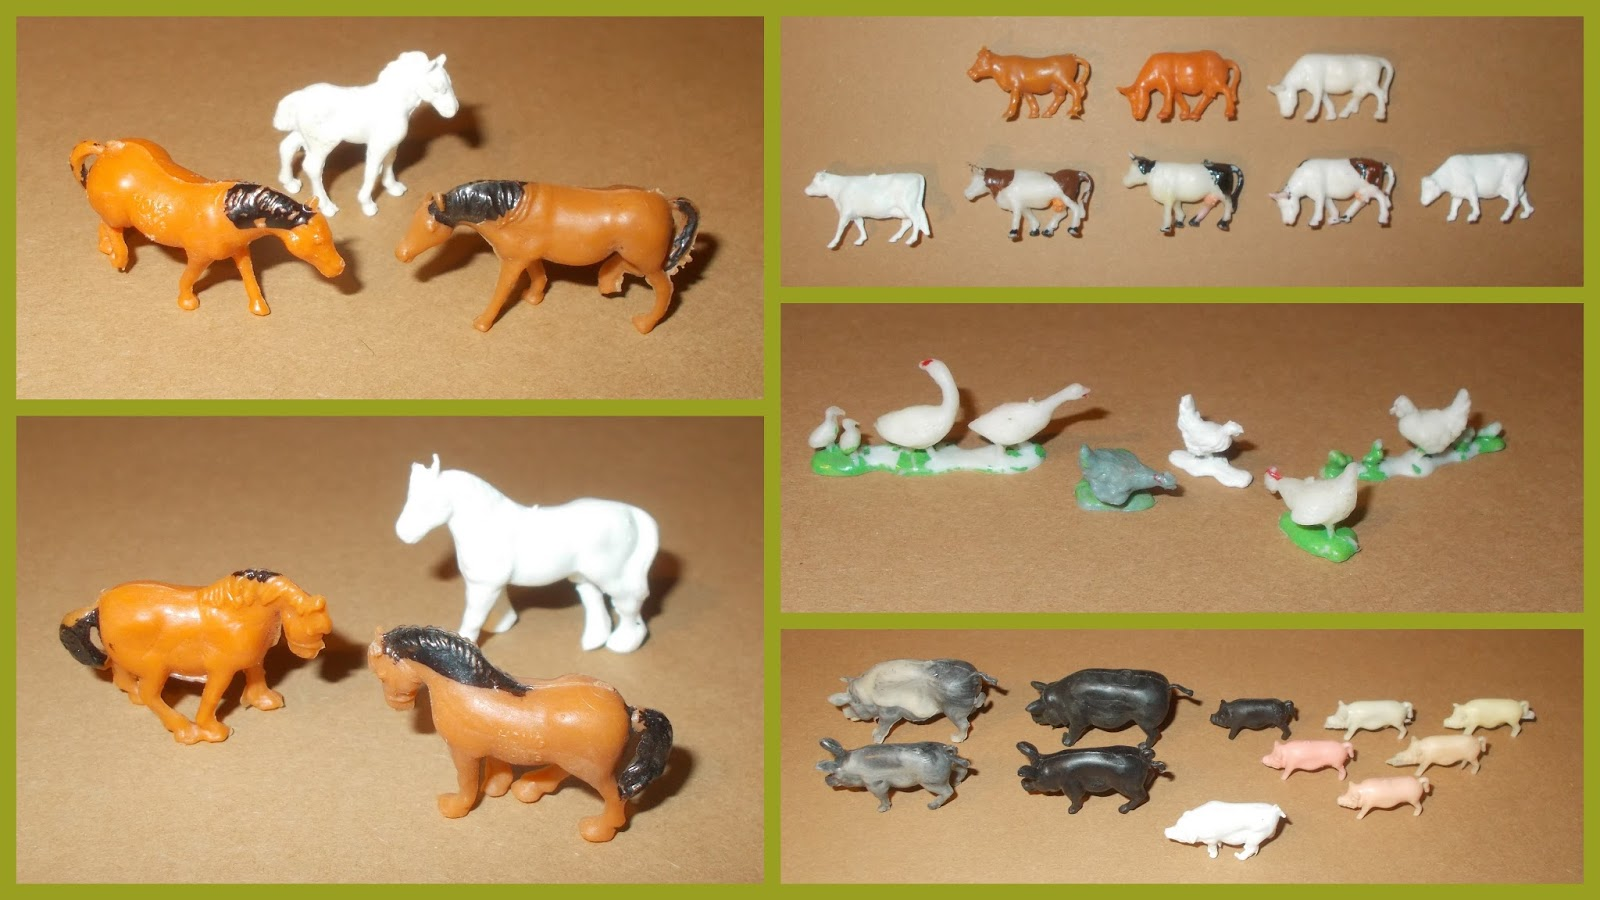 Blue Box Mini Farm Animals Also Issued By Marx As Part Of Their Contract Manufactured Sunshine Series Well Being Under Tai Sang S Other Brand